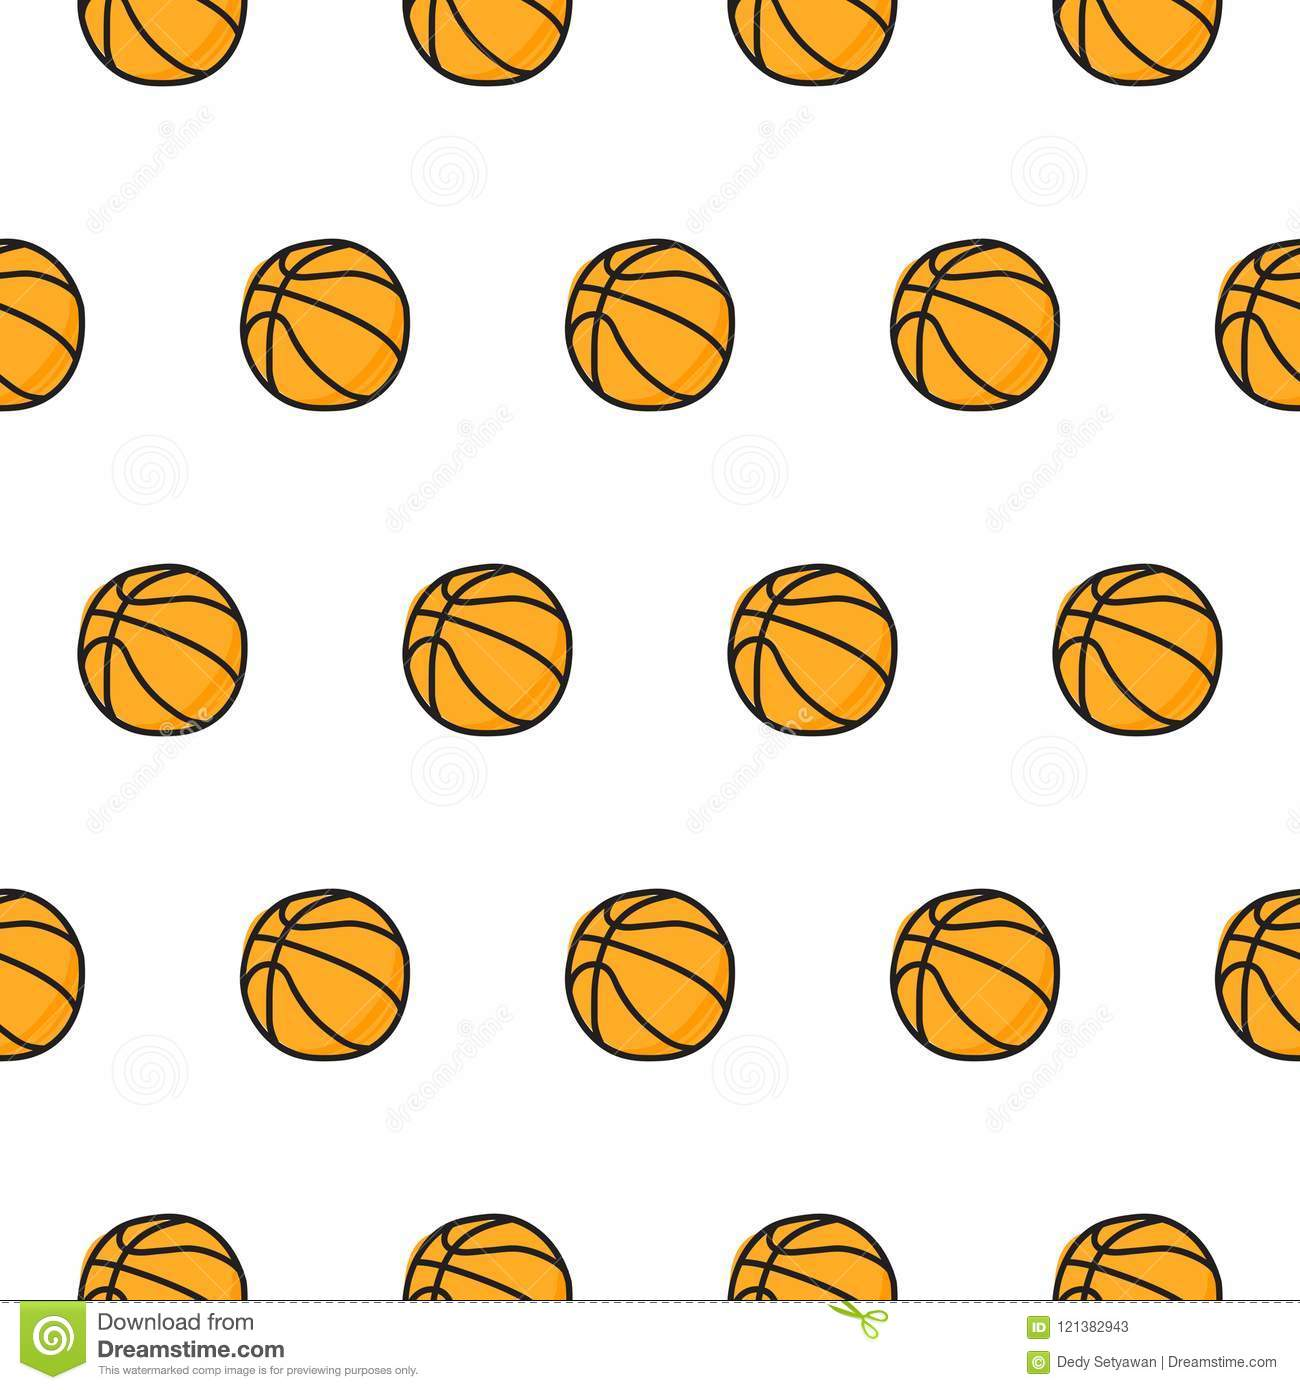 Basketball Doodle Seamless Pattern Stock Vector Illustration Of